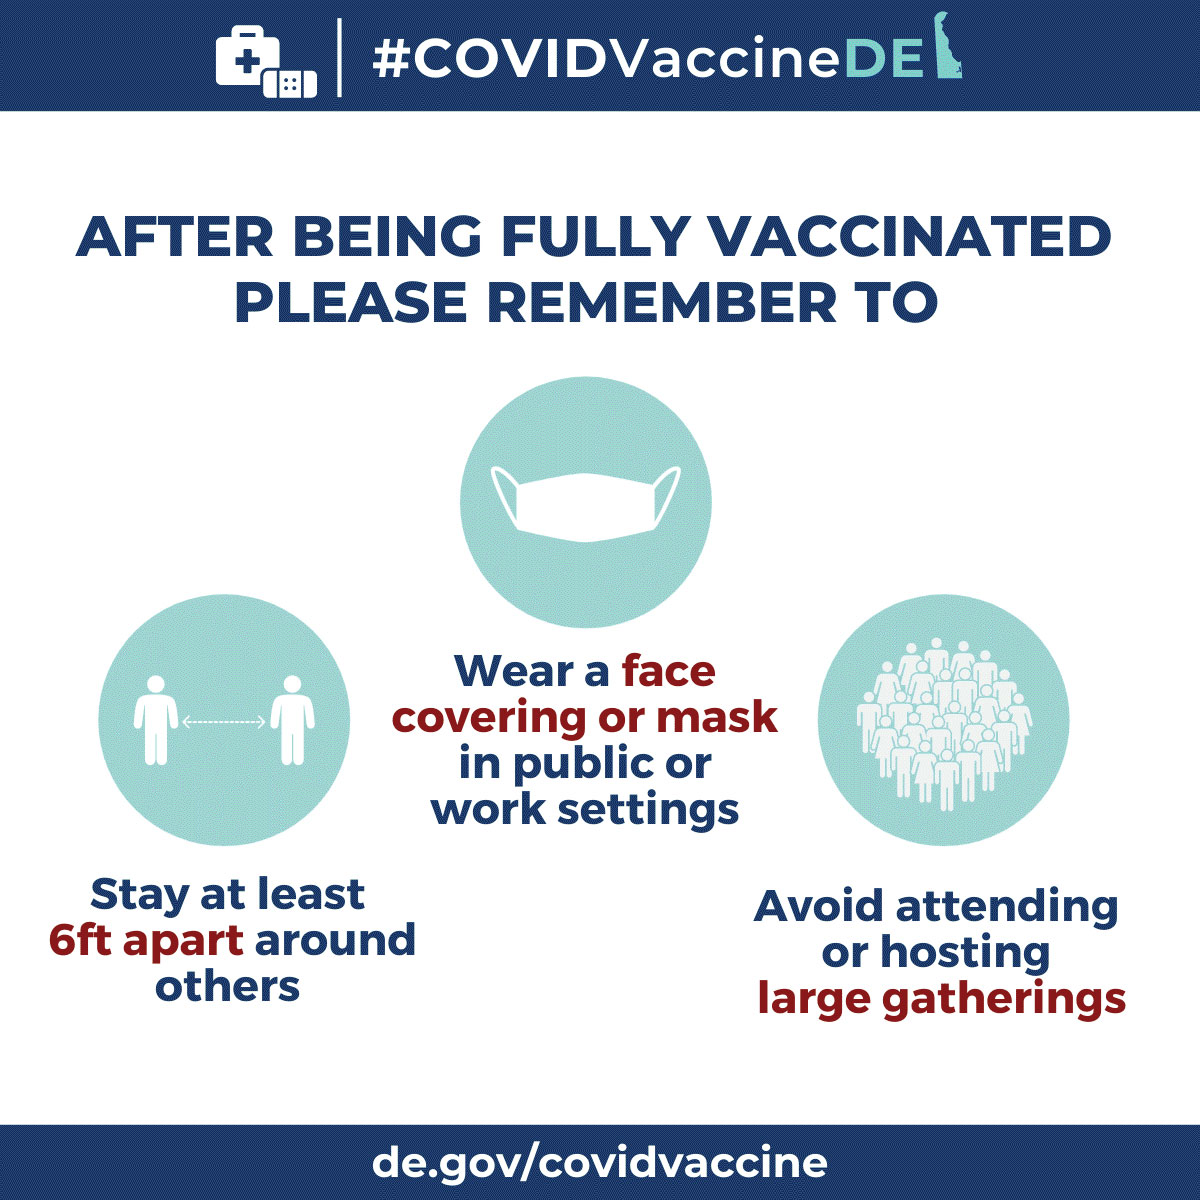 After being fully vaccinated please remember to social distance, wear a face mask and avoid attending or hosting large gatherings.